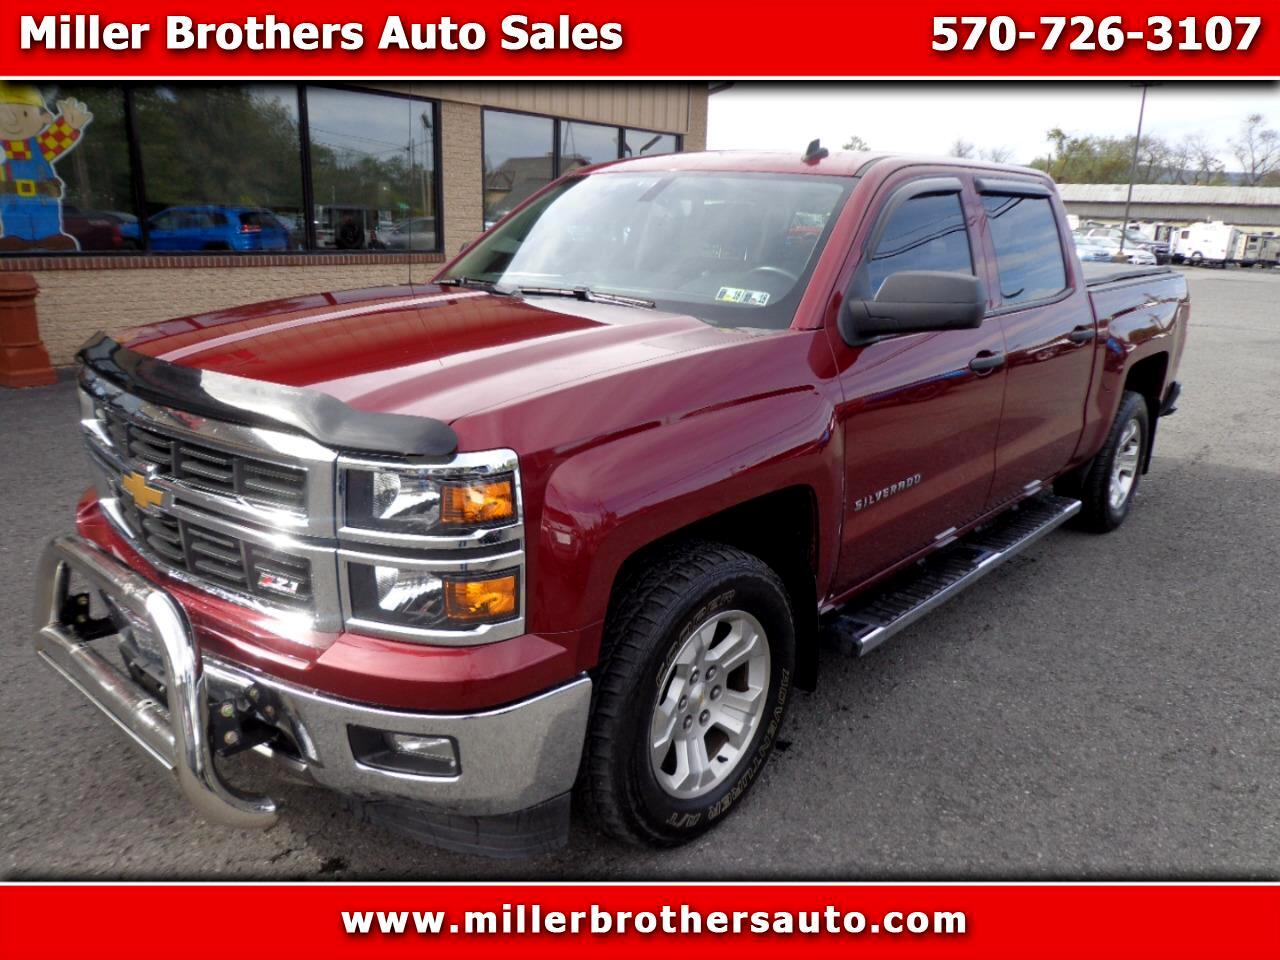 Used Cars For Sale Mill Hall Pa 17751 Miller Brothers Auto Sales 1991 Chevrolet Crew Cab 2014 Silverado 1500 1lt 4wd